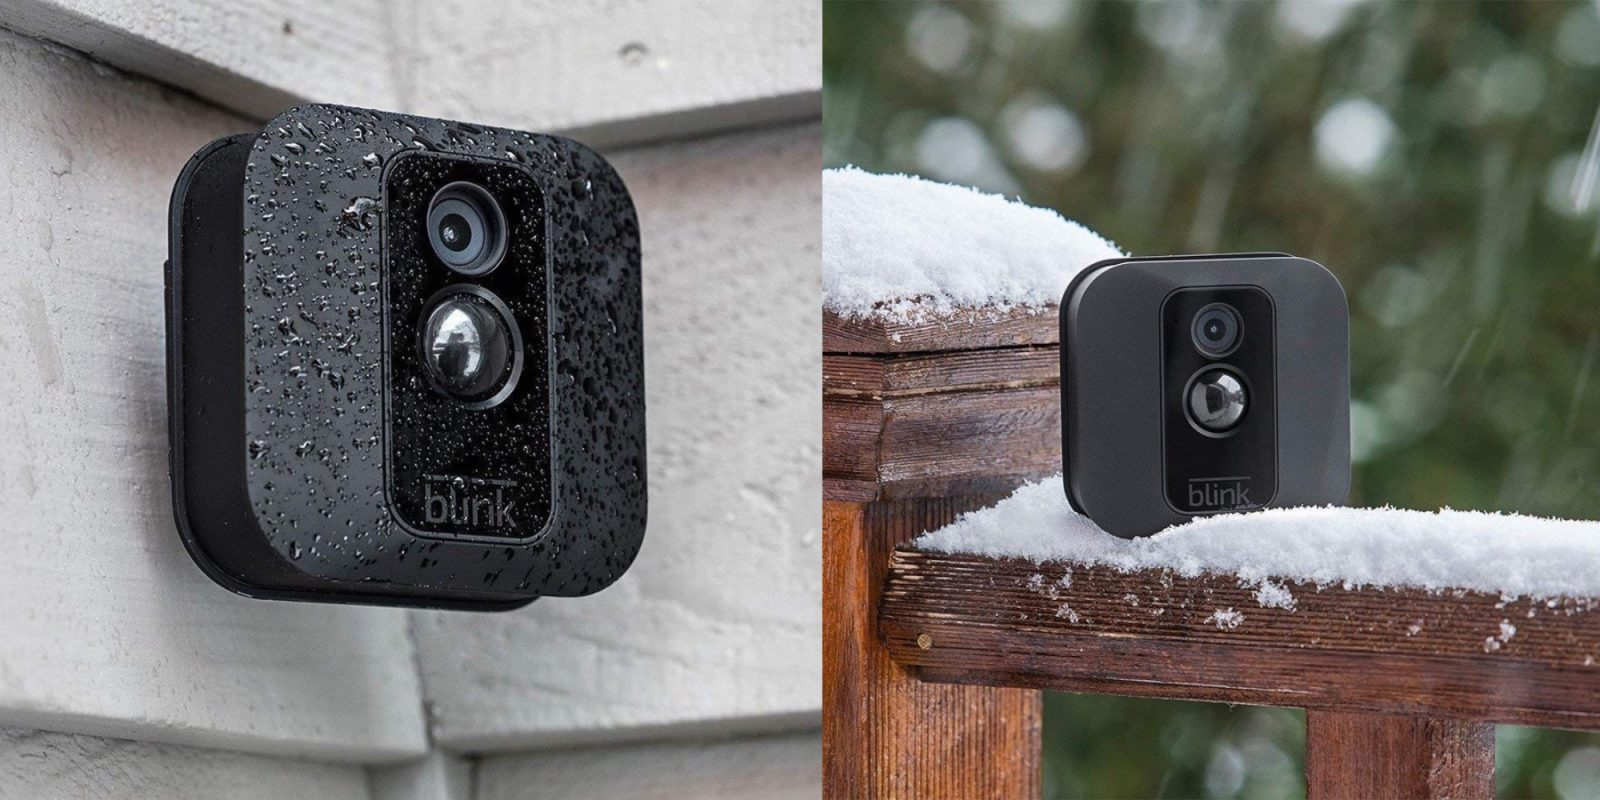 Blink XT Outdoor Cameras pack free cloud storage, save on bundles from $60